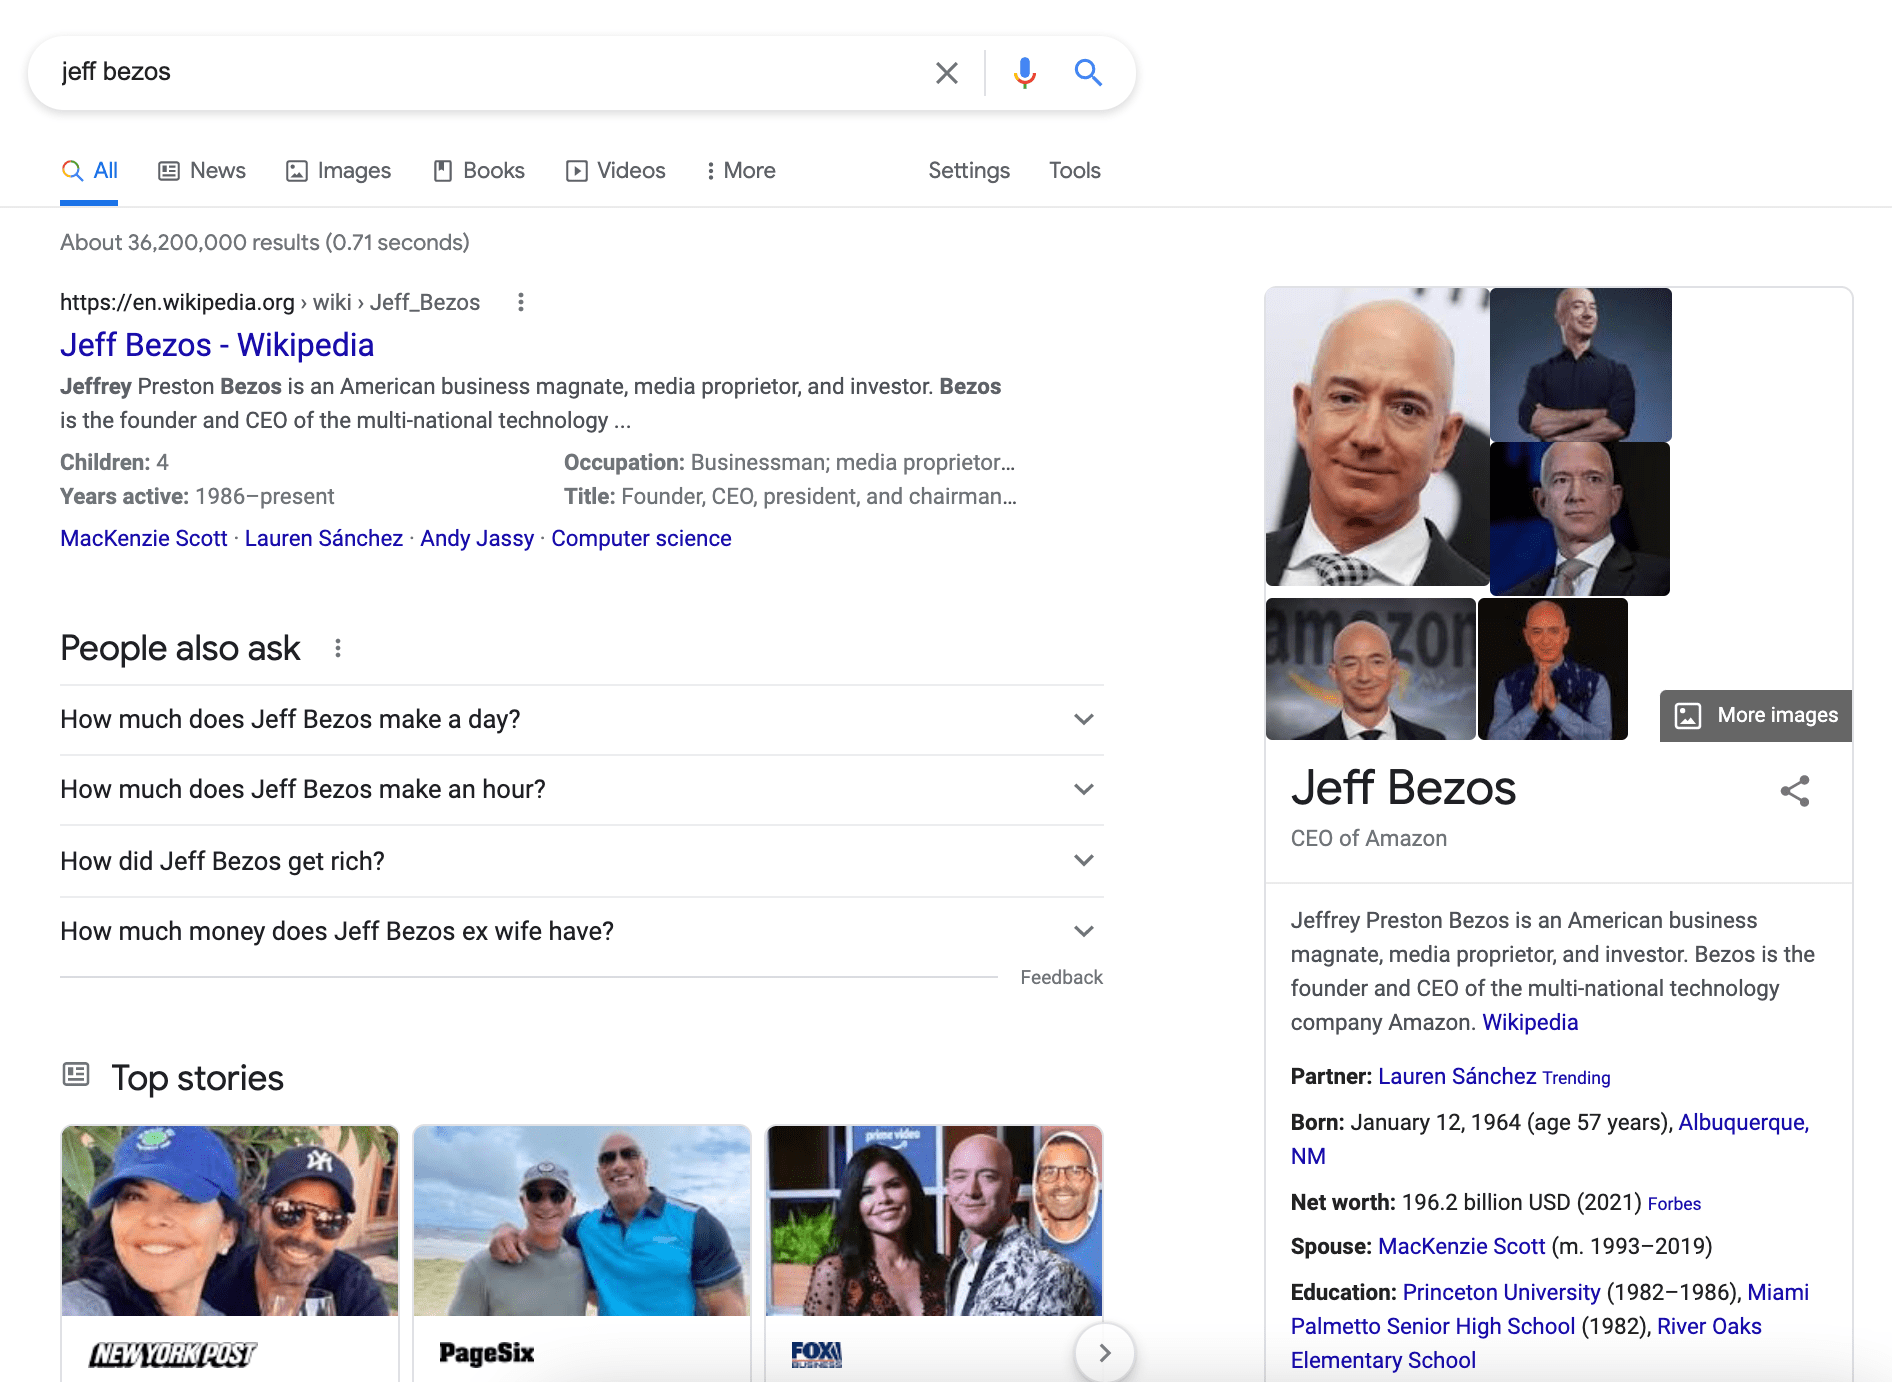 search results for the search term jeff bezos as an example of semantic search